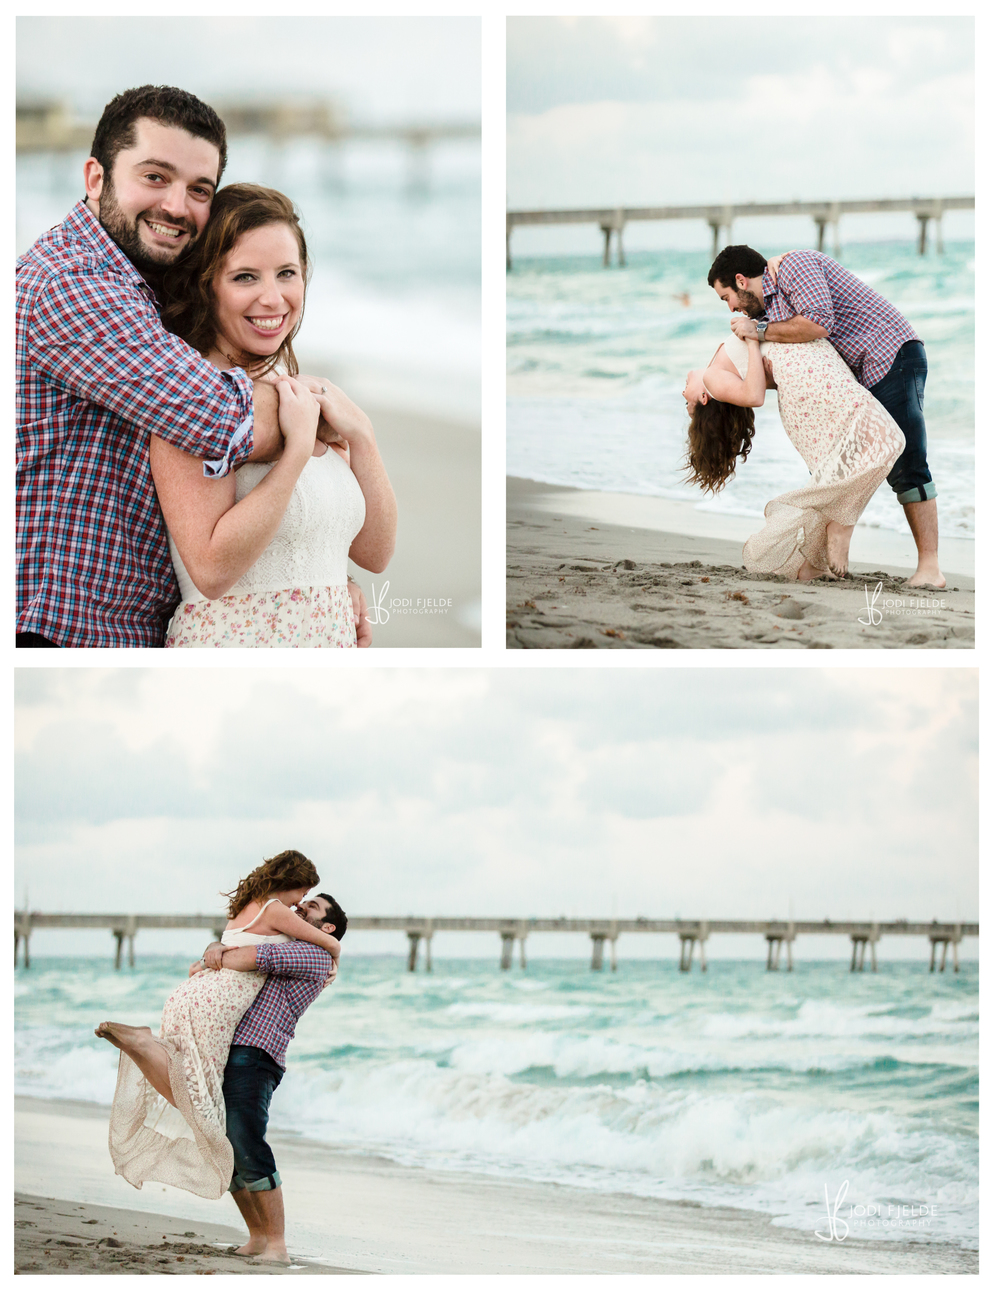 Dania_Beach_Engagement_Julia_Elias_Jodi_Fjelde_Photography-8.jpg